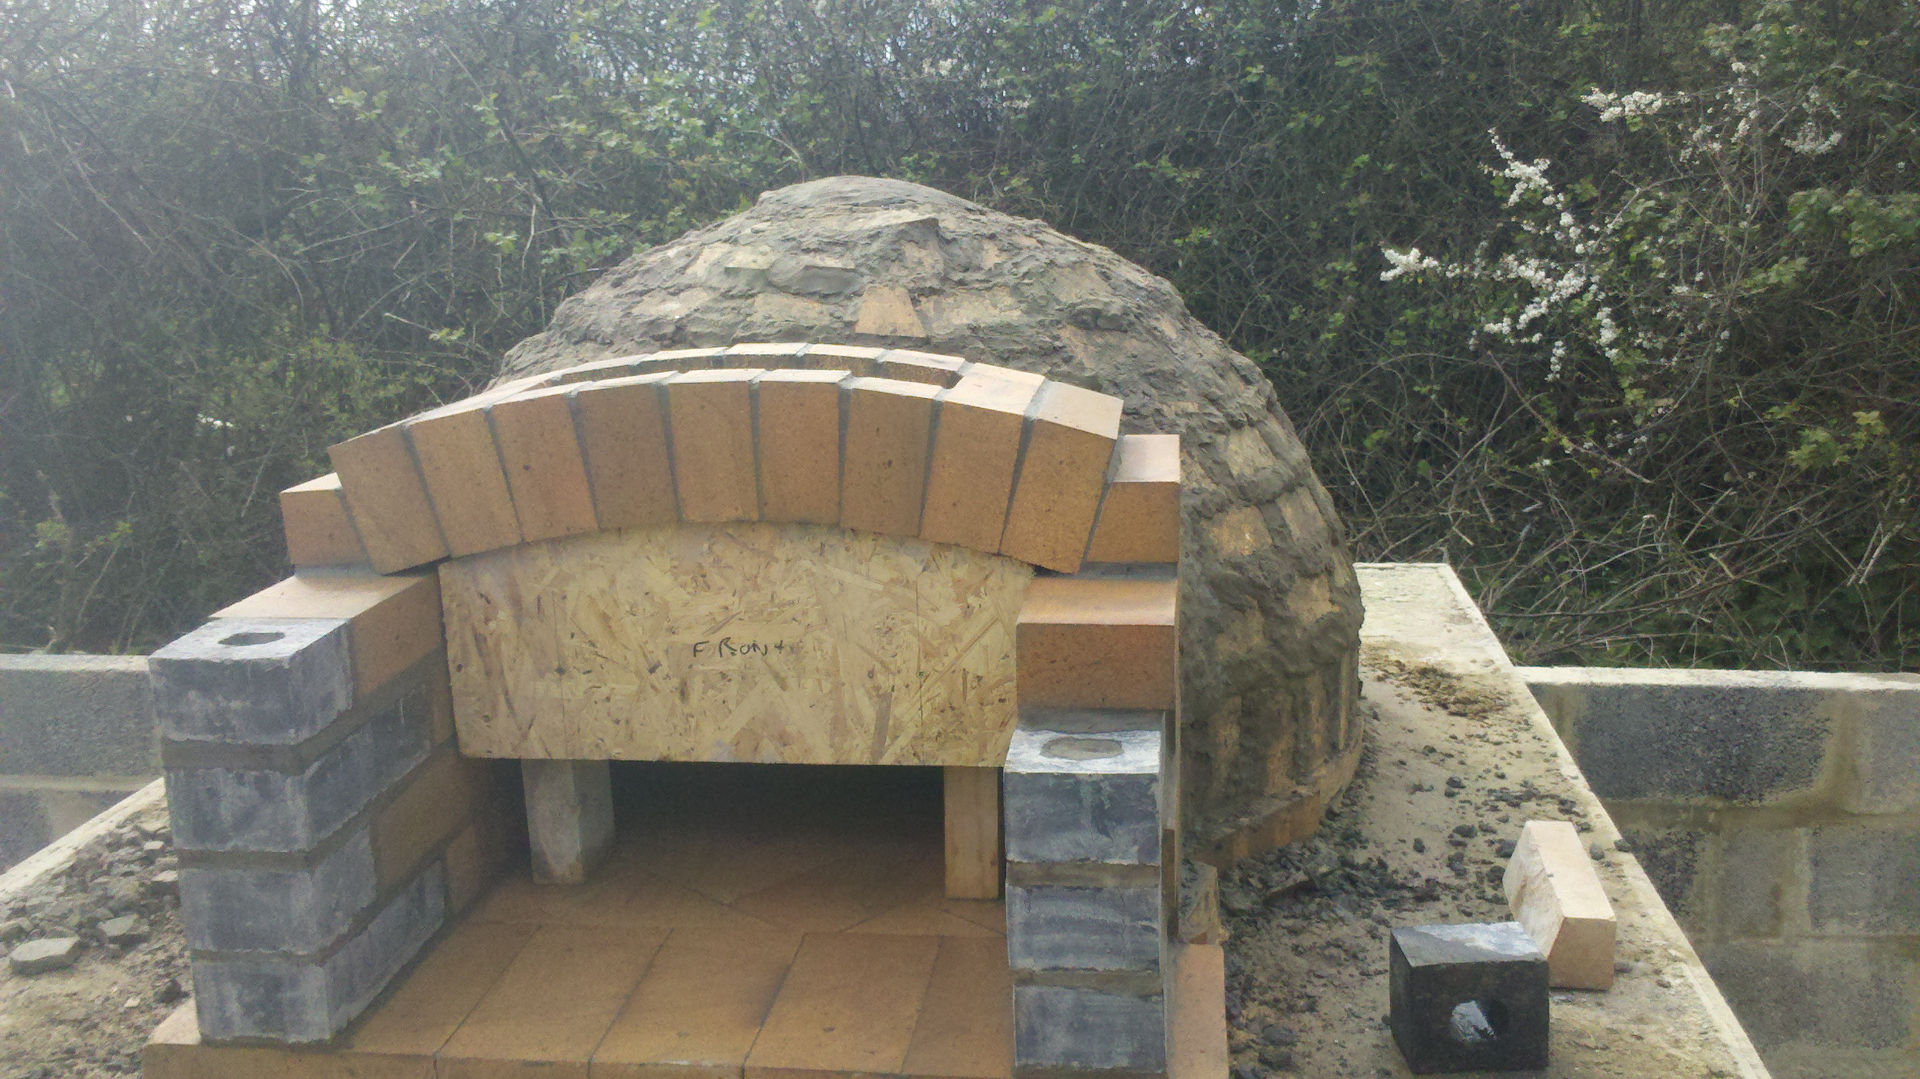 Wood-fired pizza oven archway over porch being installed